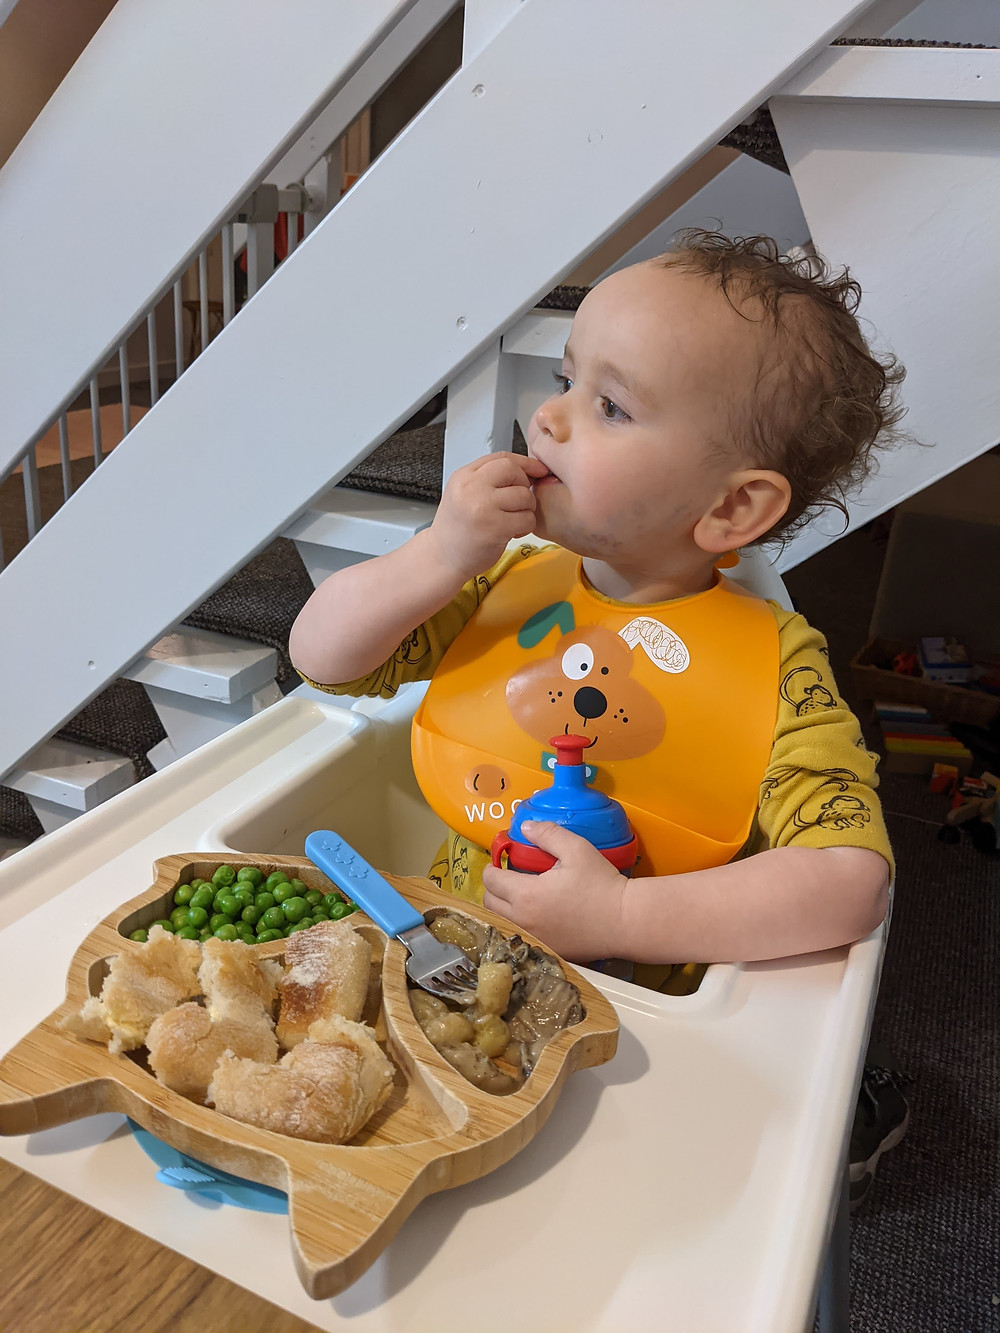 Baby boy in high chair eating finger foods for baby led weaning